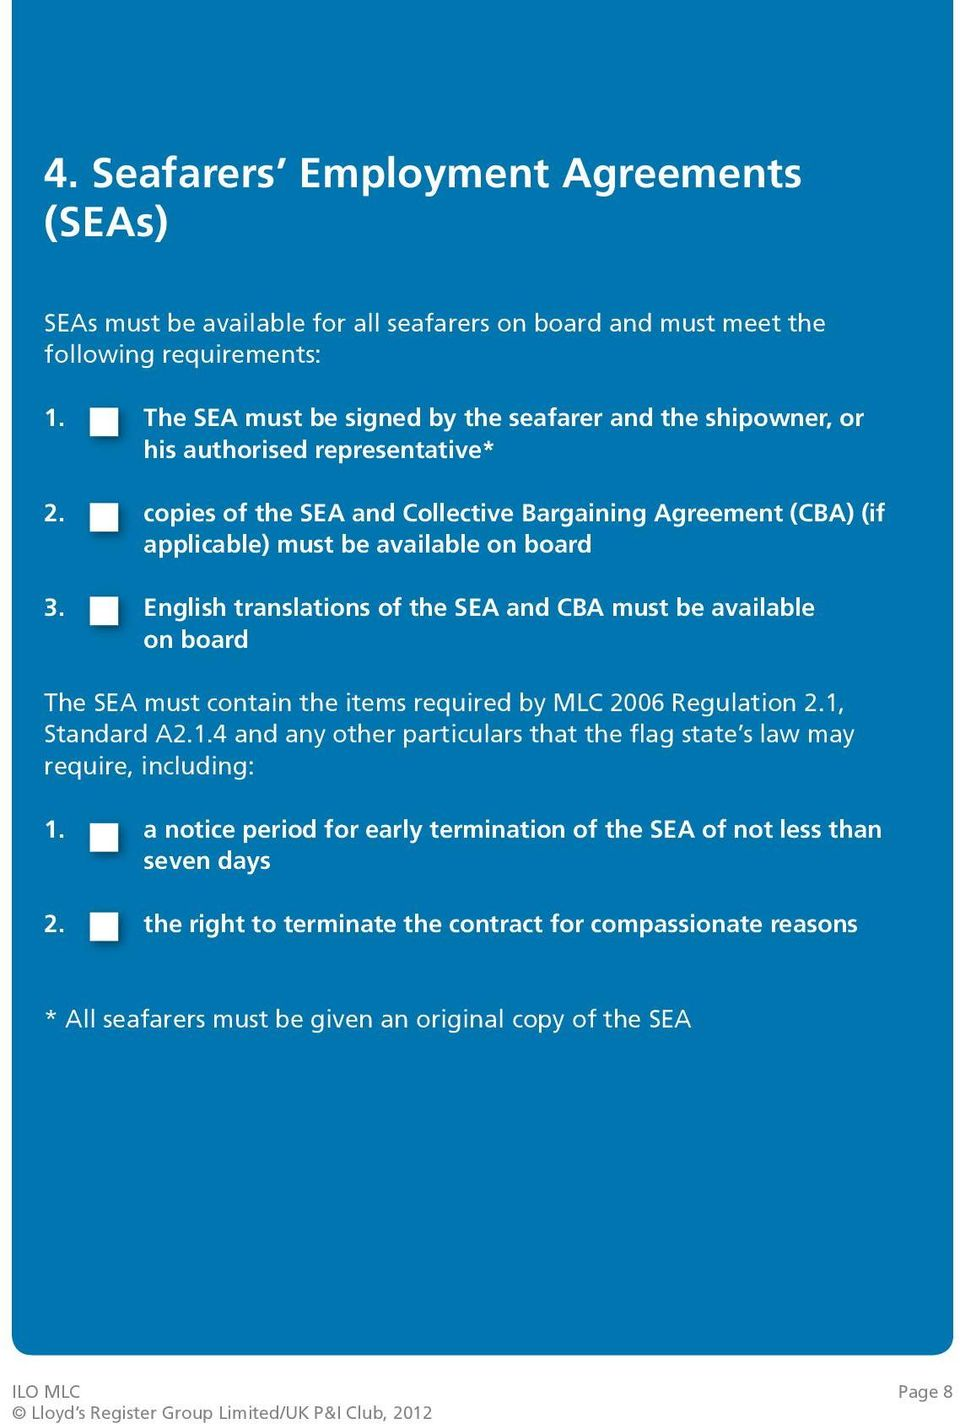 copies of the SEA and Collective Bargaining Agreement (CBA) (if applicable) must be available on board 3.